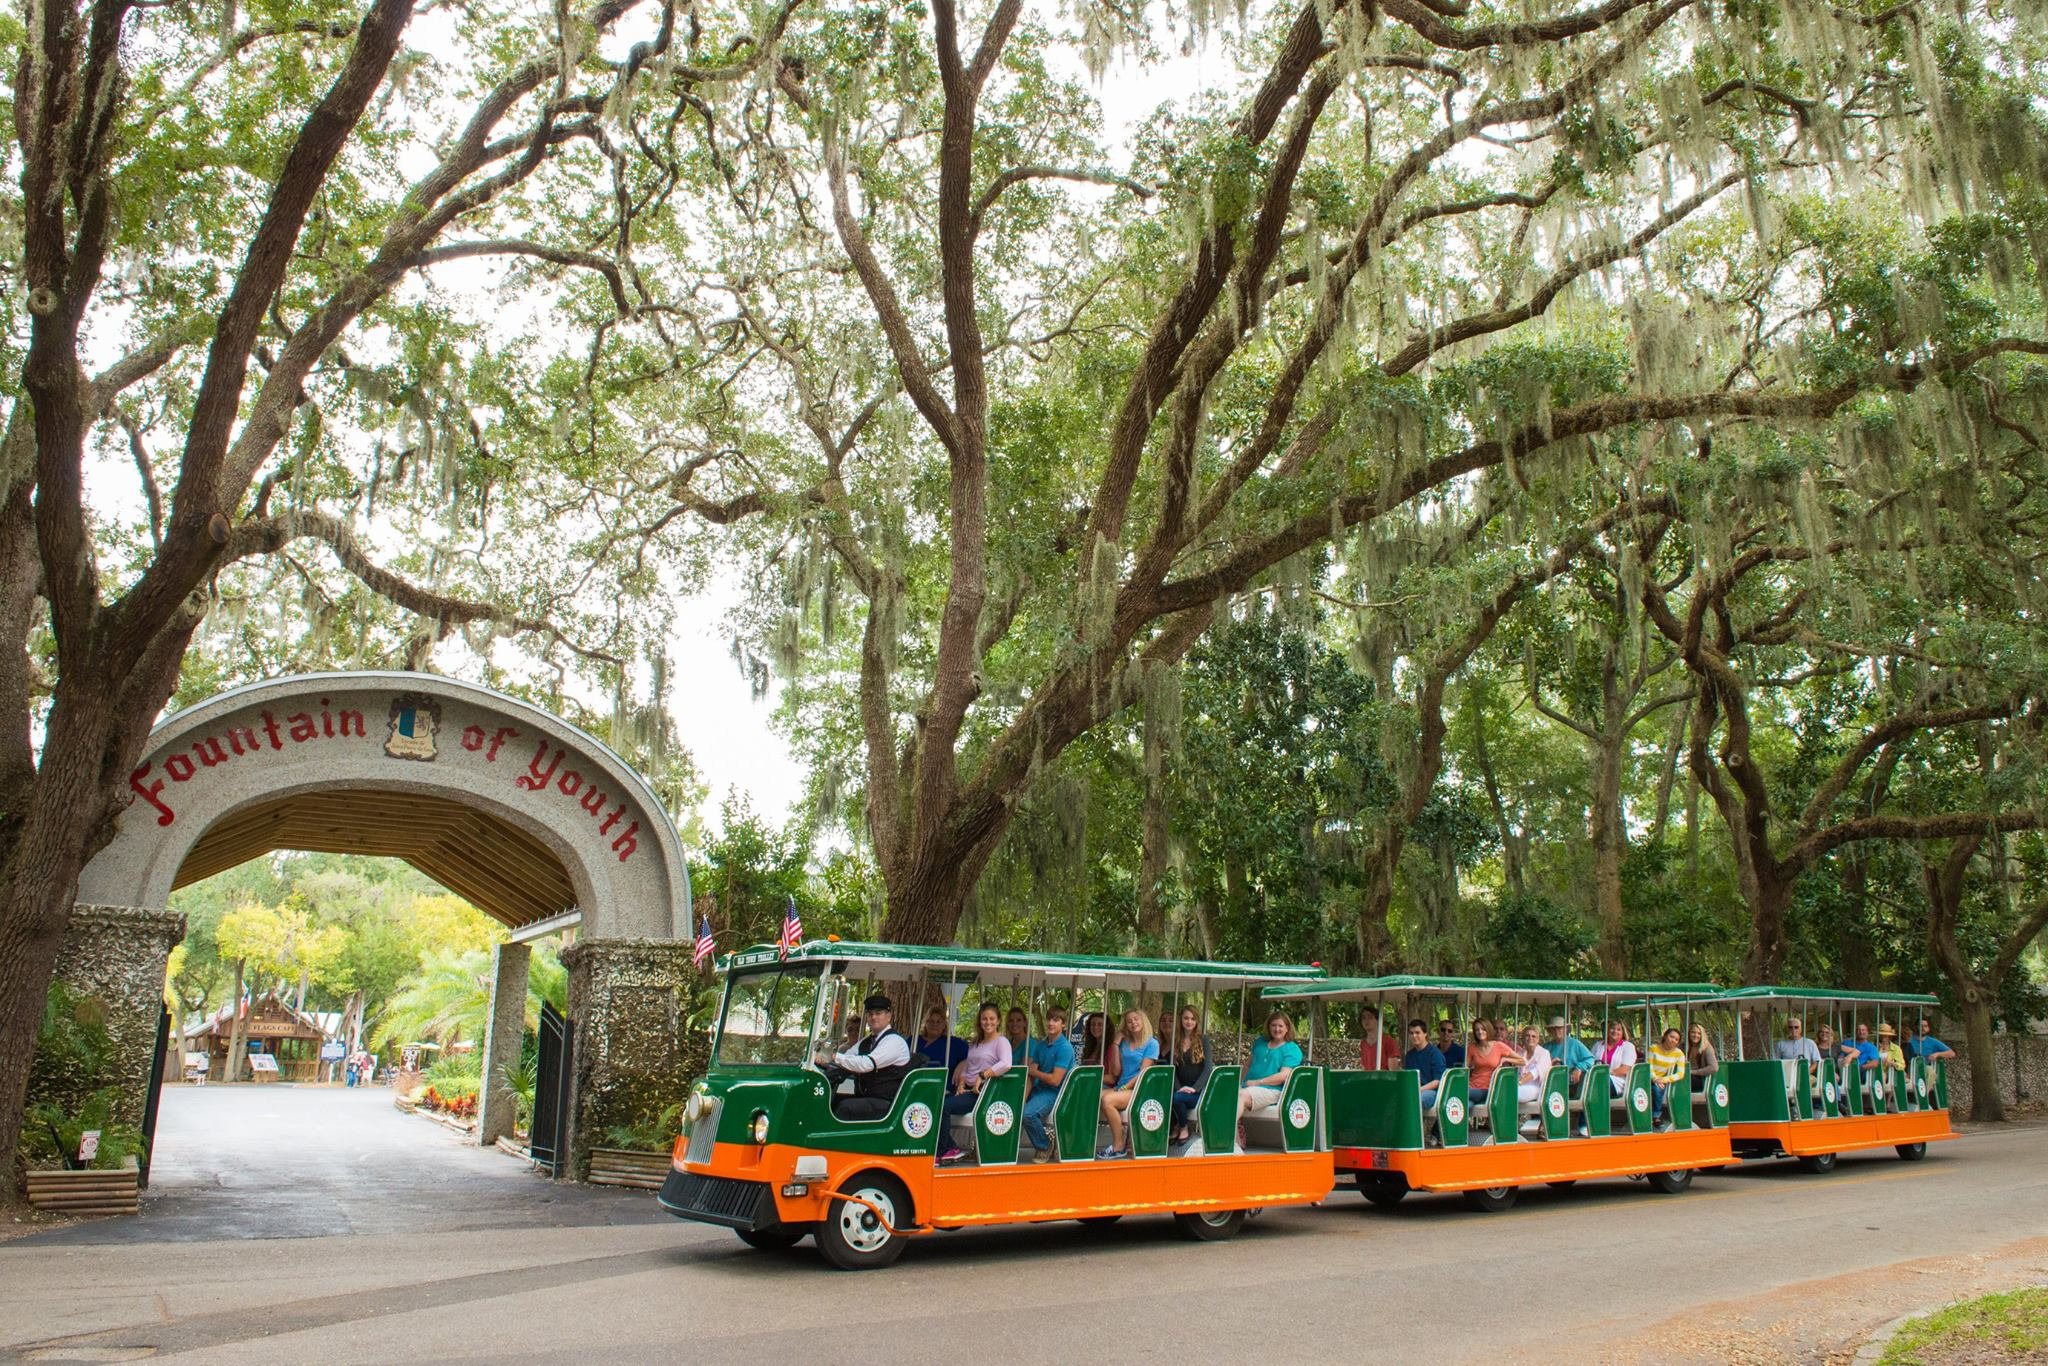 Take This Magical Trolley Ride In Florida In The Nation S Oldest City